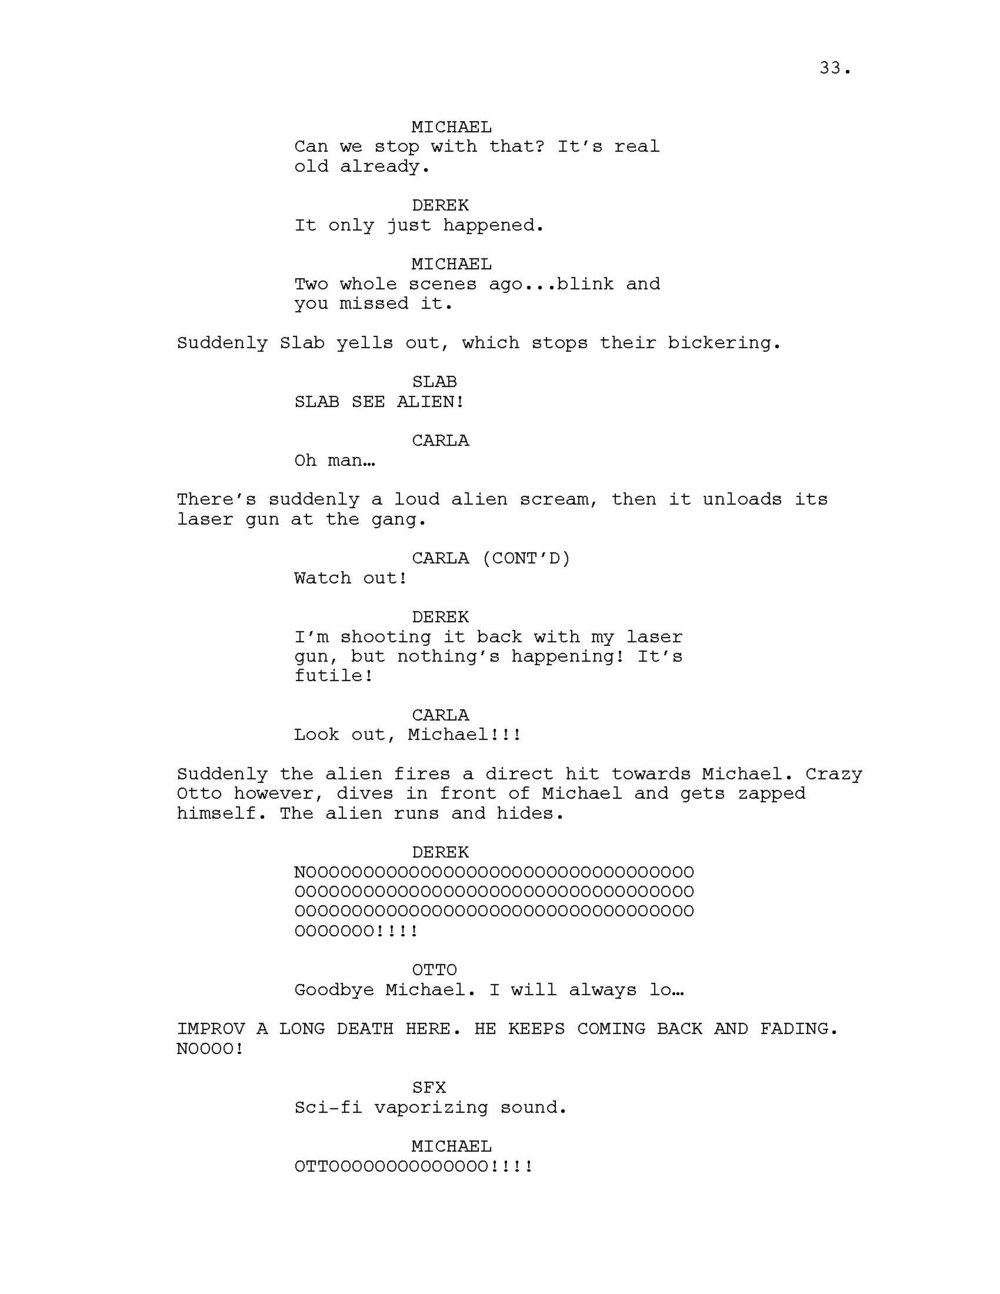 INVISIBLE WORLD SCRIPT_Page_034.jpg